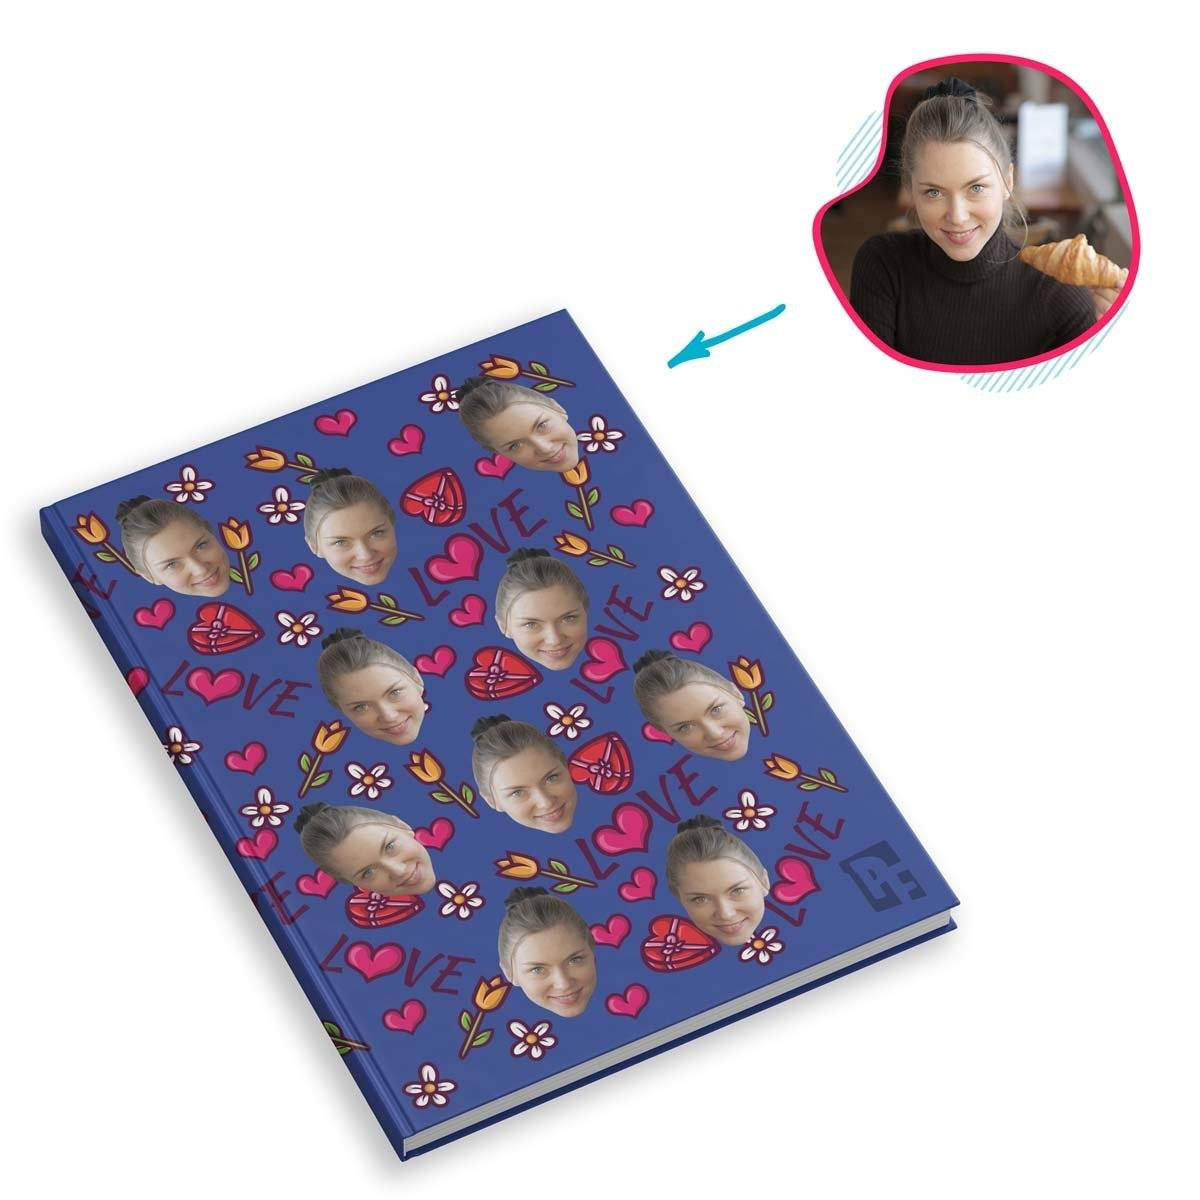 darkblue Hearts and Flowers Notebook personalized with photo of face printed on them